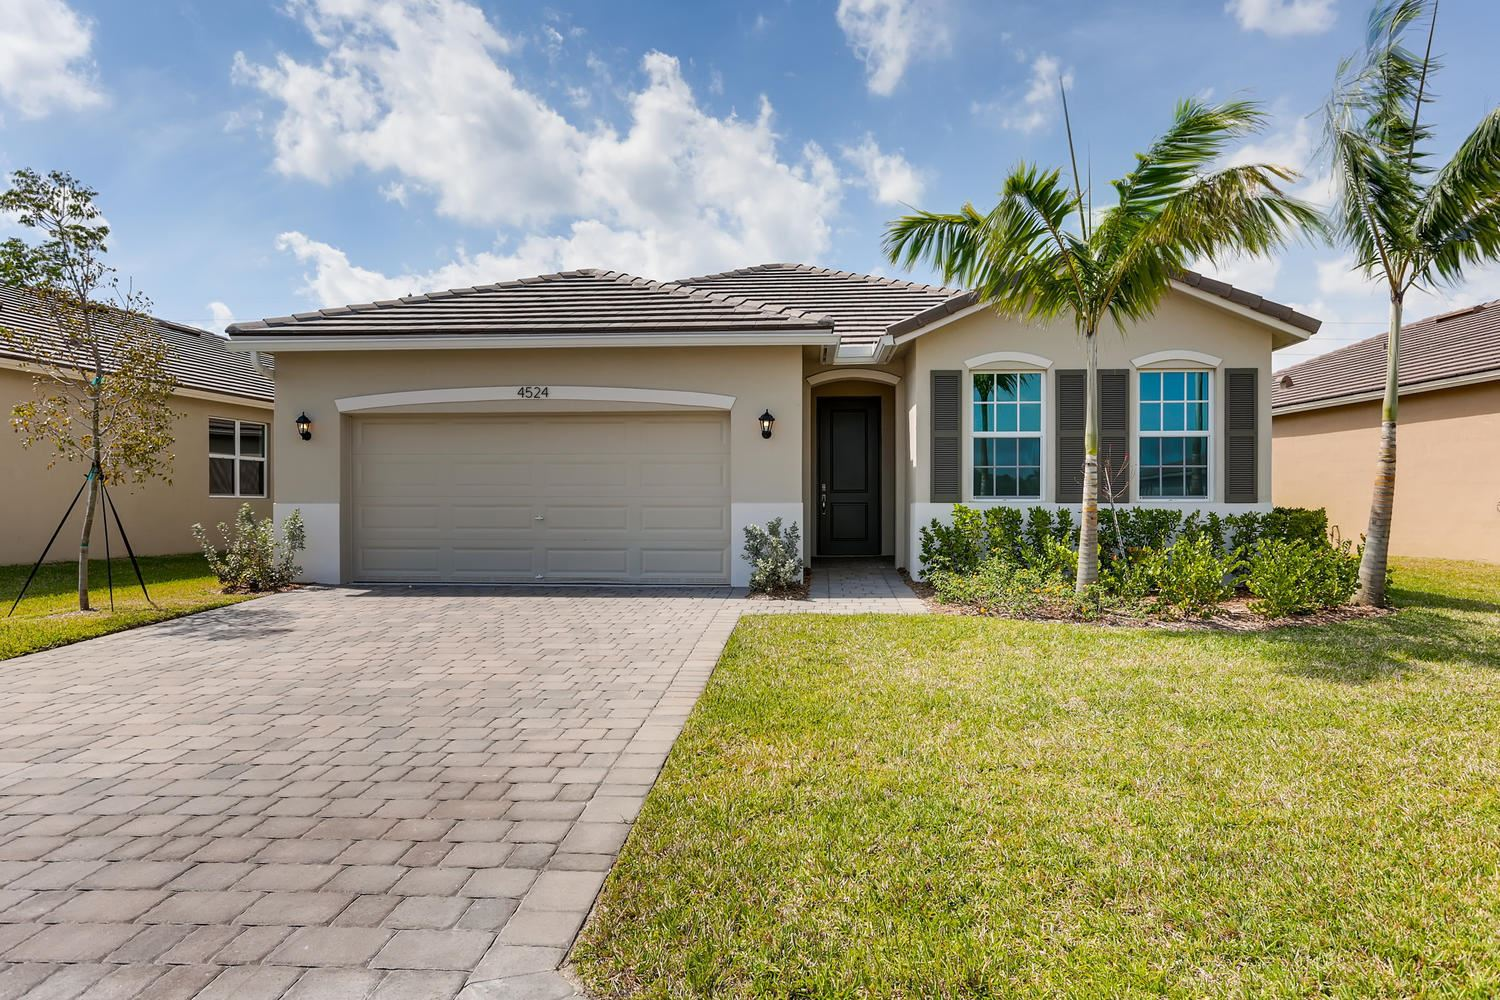 4524 NW King Court, Jensen Beach, FL 34957 - #: RX-10596528